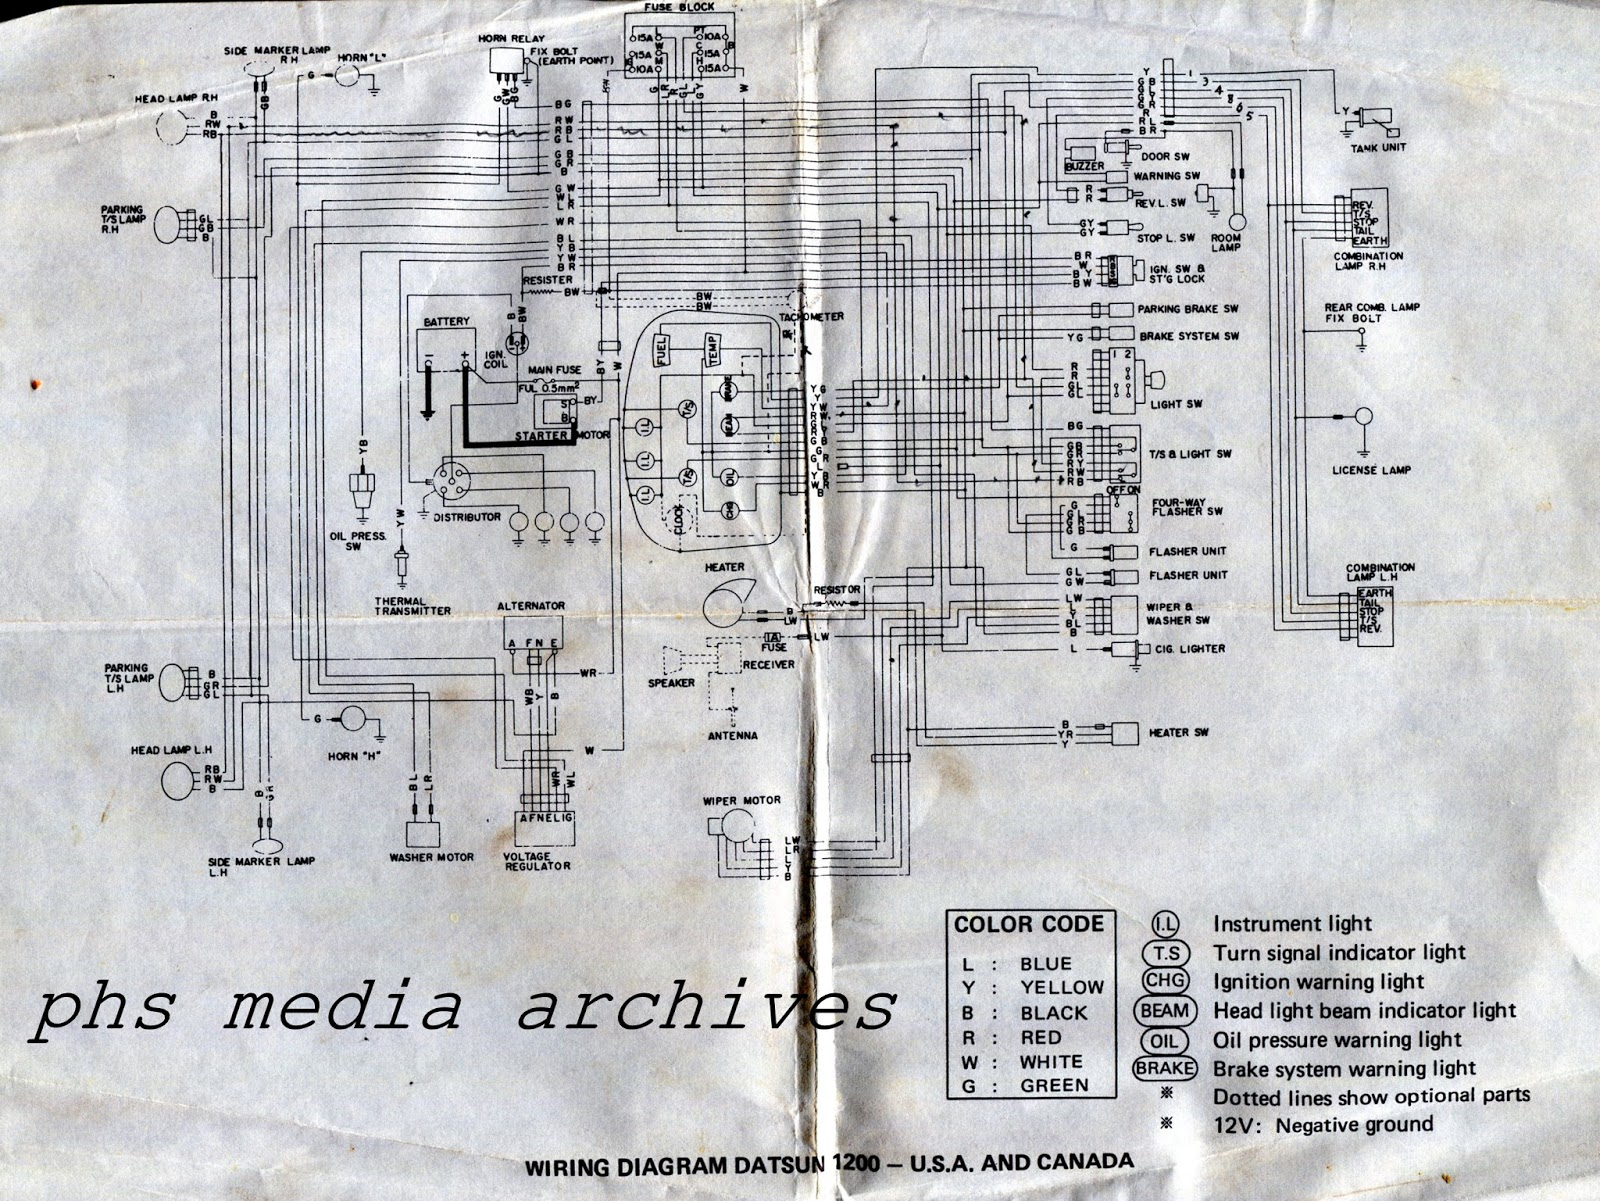 1964 Ford Steering Parts Diagram Falcon Column Phs Tech Series Datsun Wiring Diagrams Blogspot Com Saginaw Power